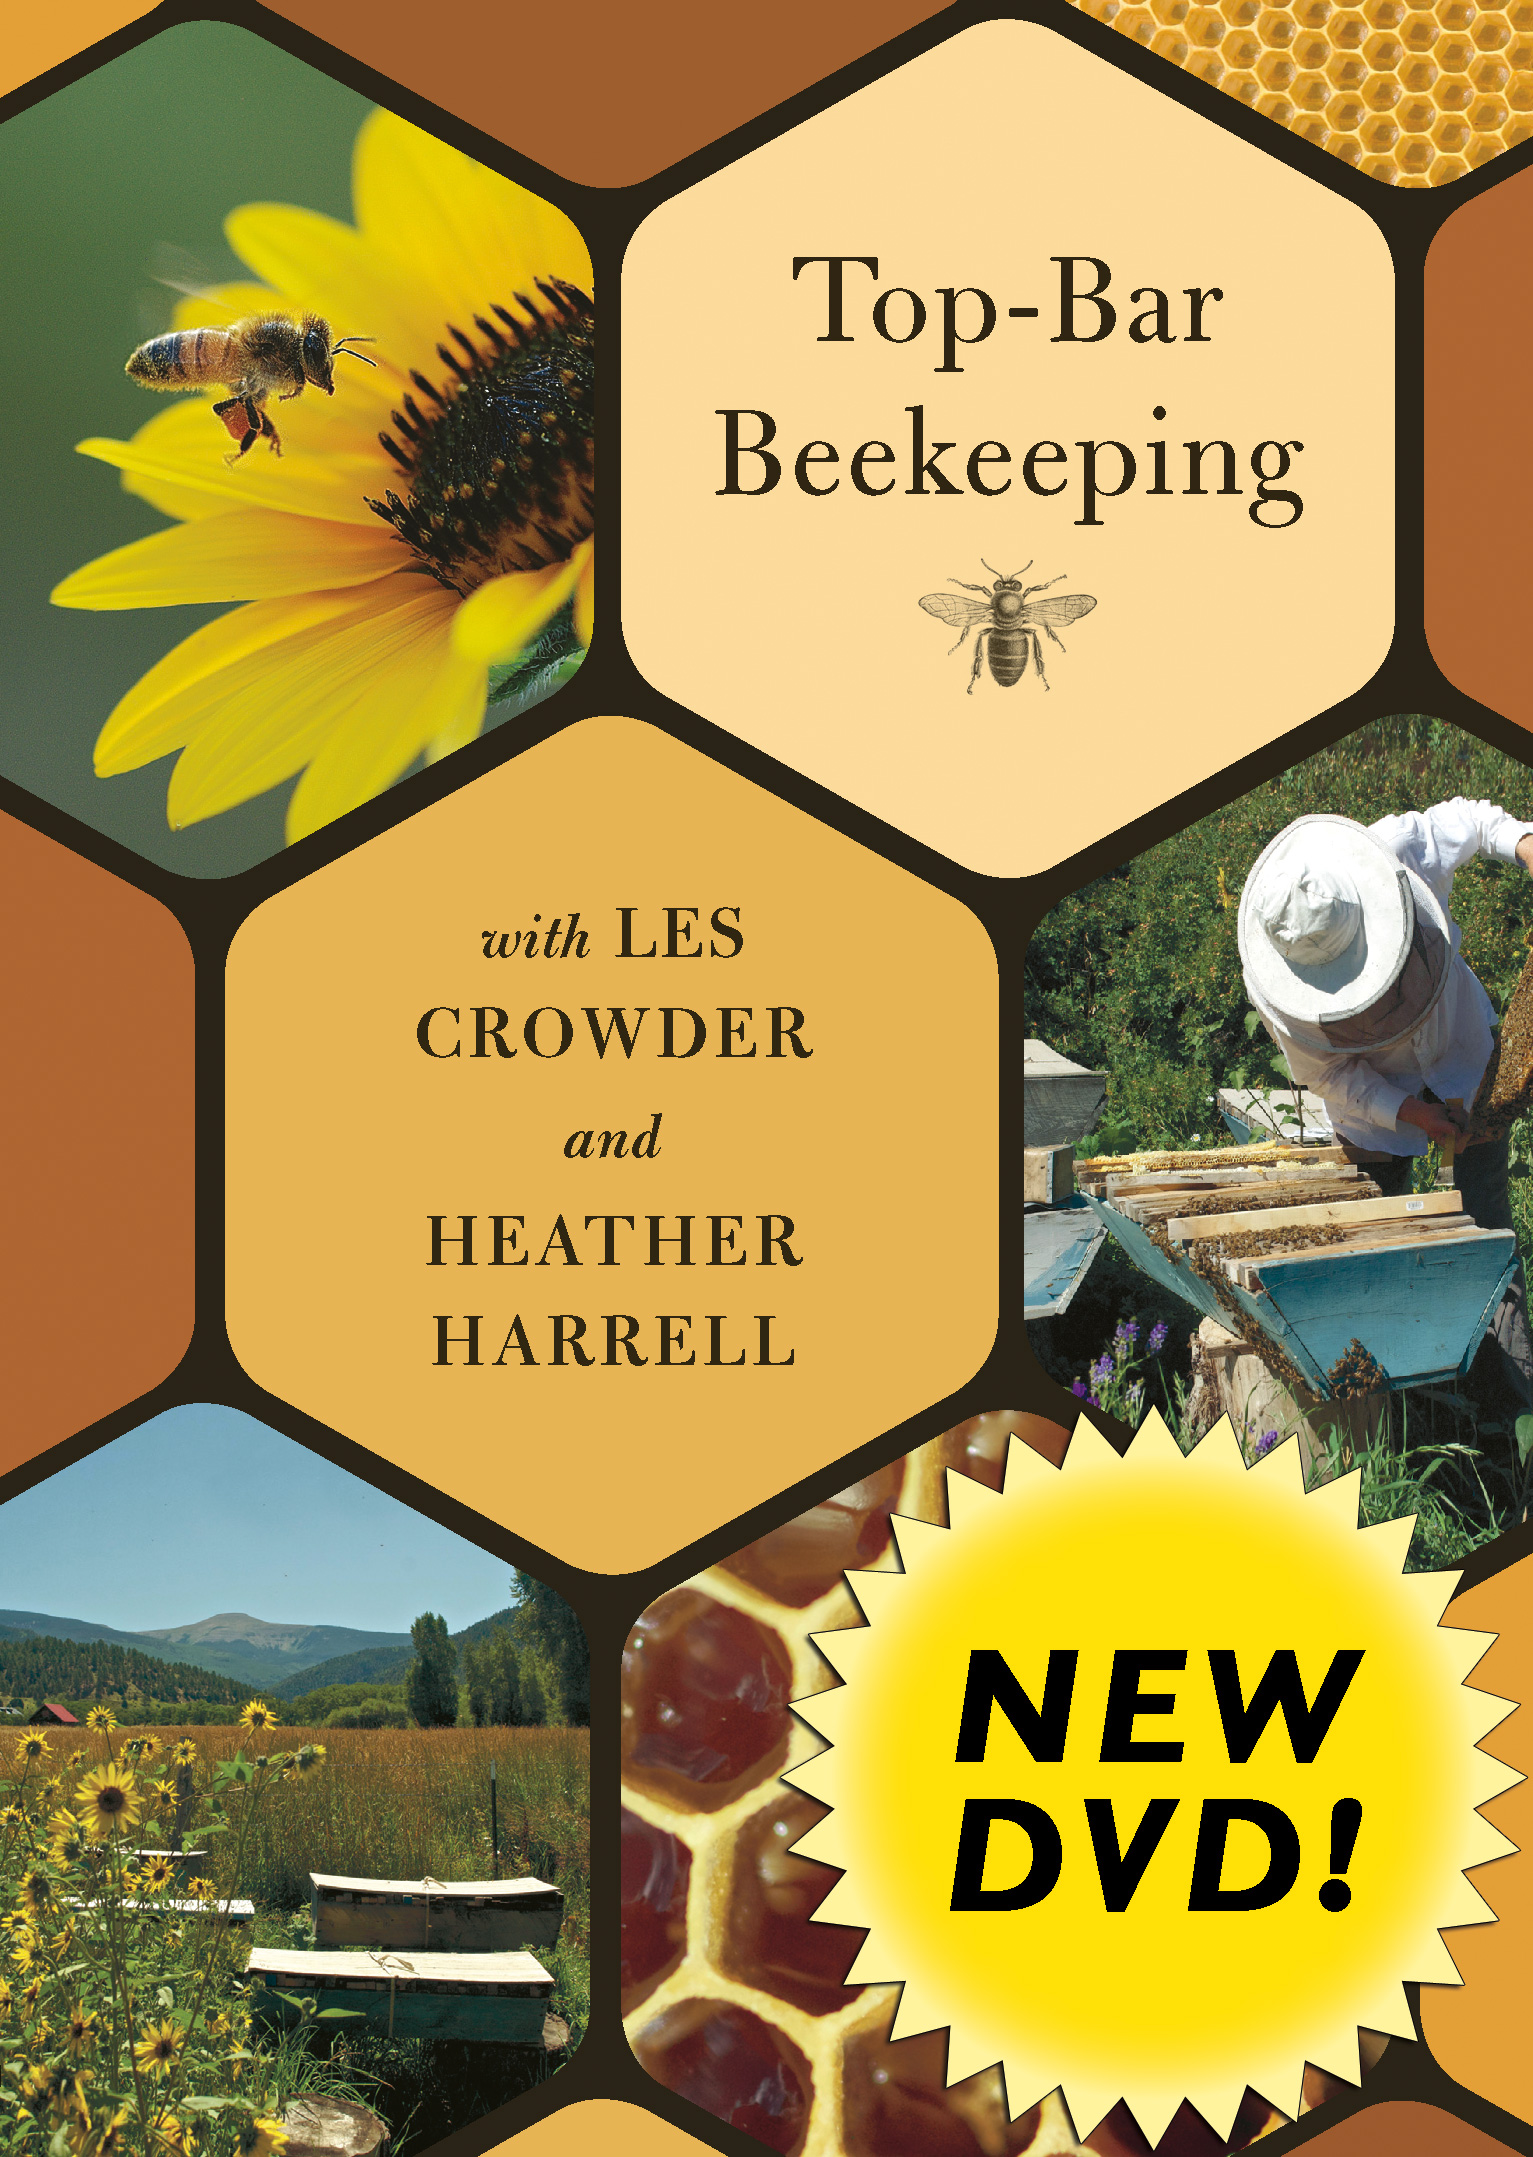 Top Bar Beekeeping DVD Cover